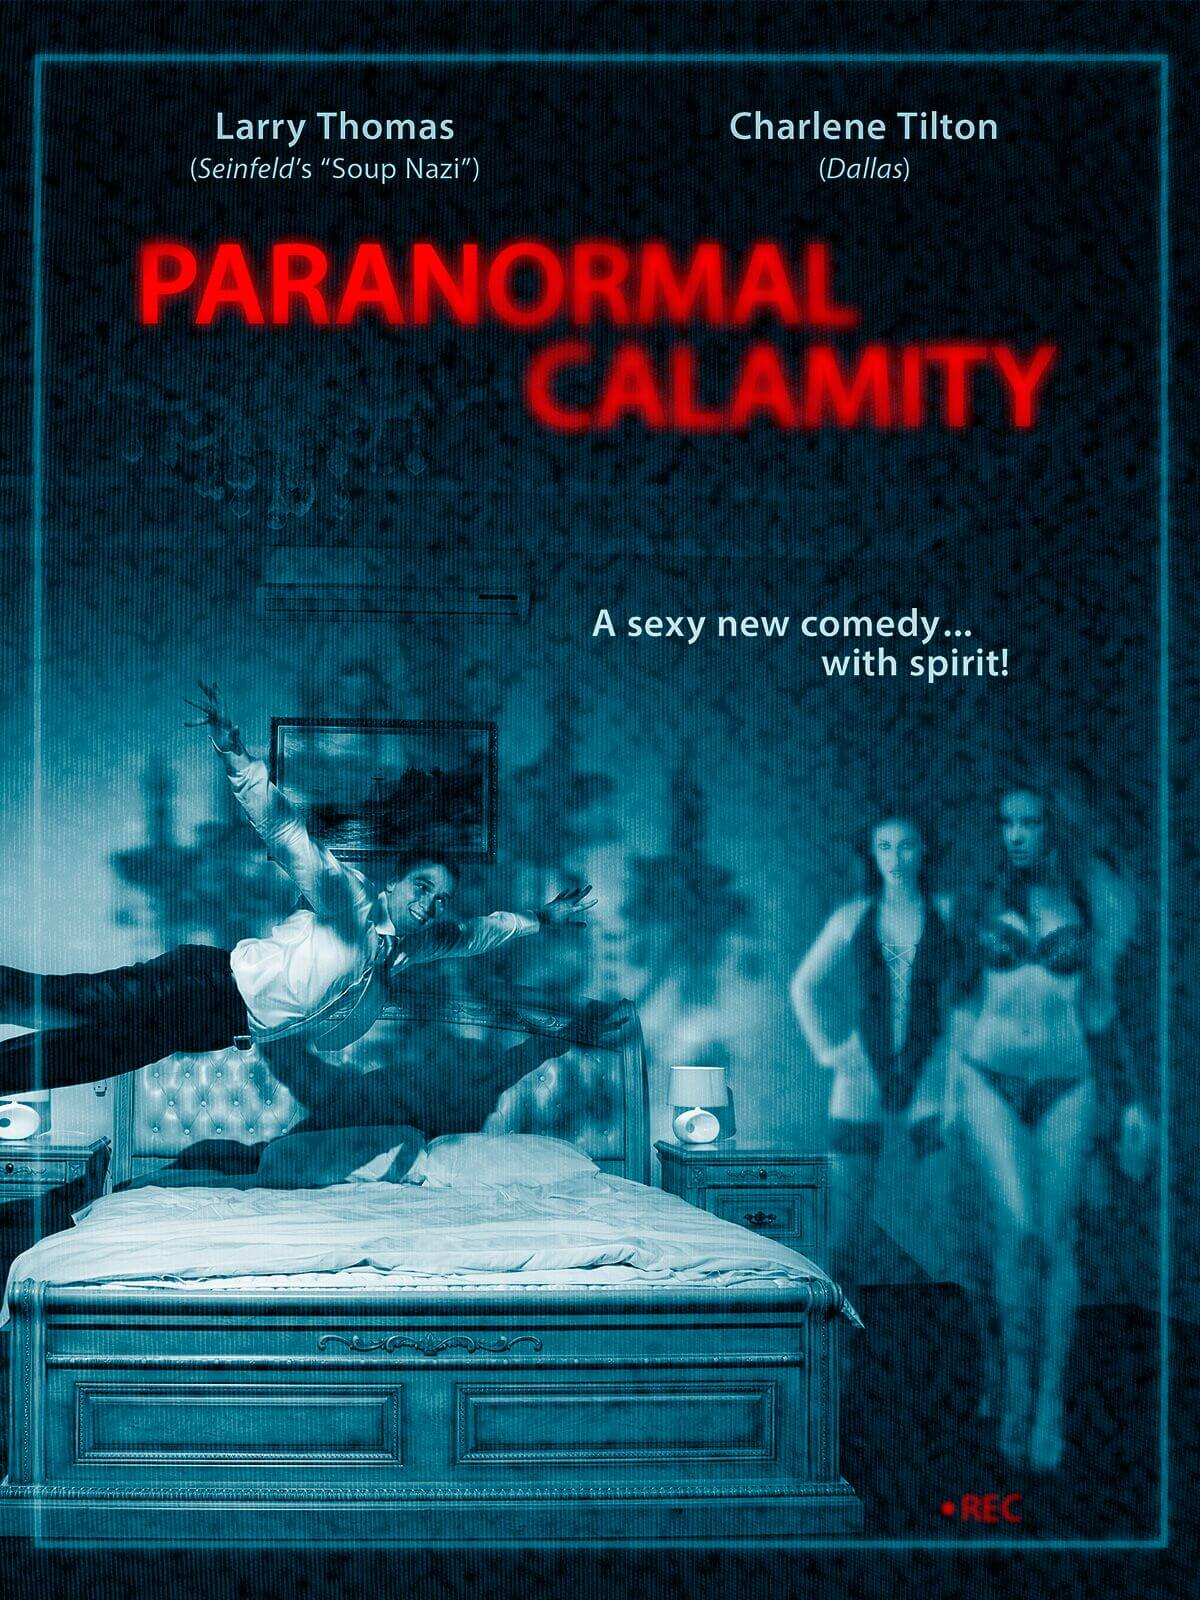 Spicing Things Up In The Bedroom Paranormal Calamity Green Apple Entertainment